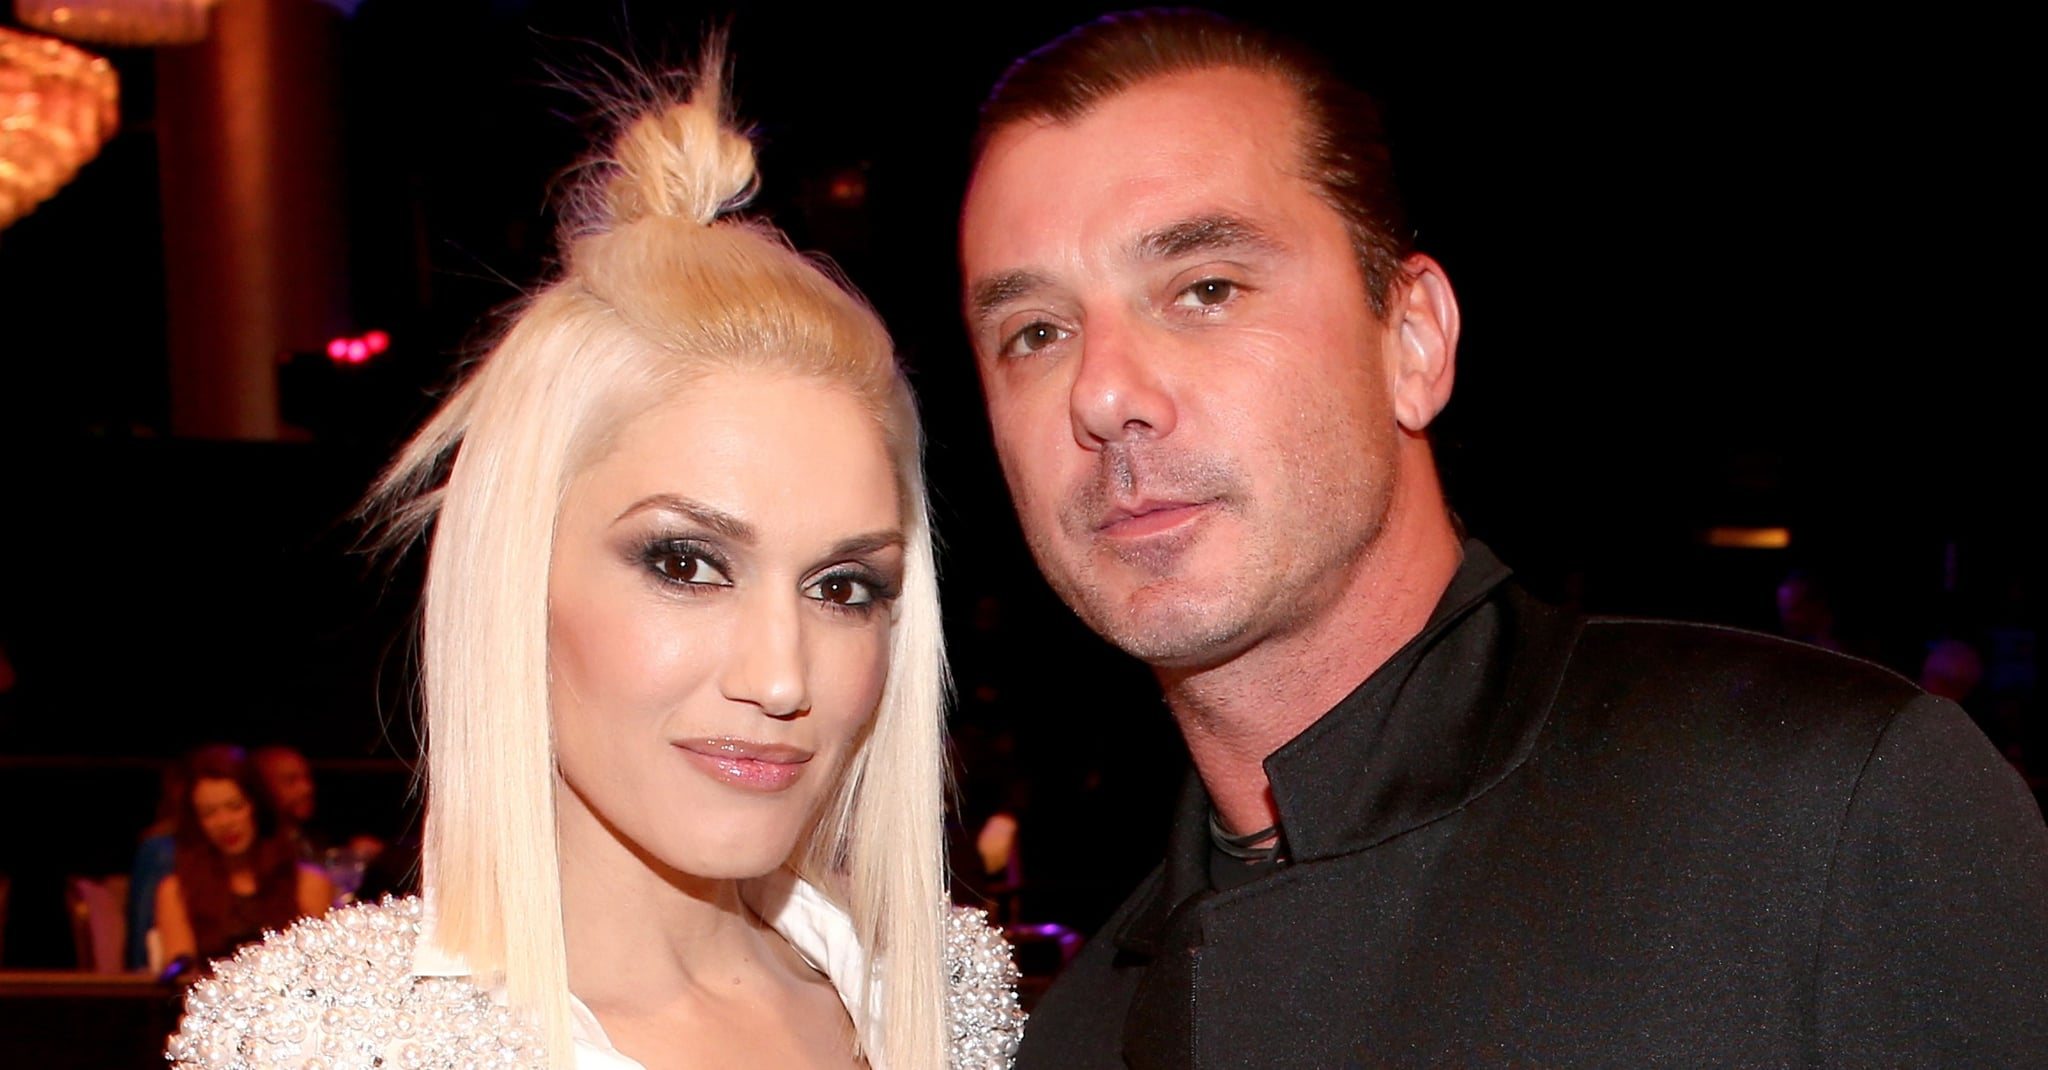 Gavin Rossdale Quotes About Gwen Stefani January 2017 ...